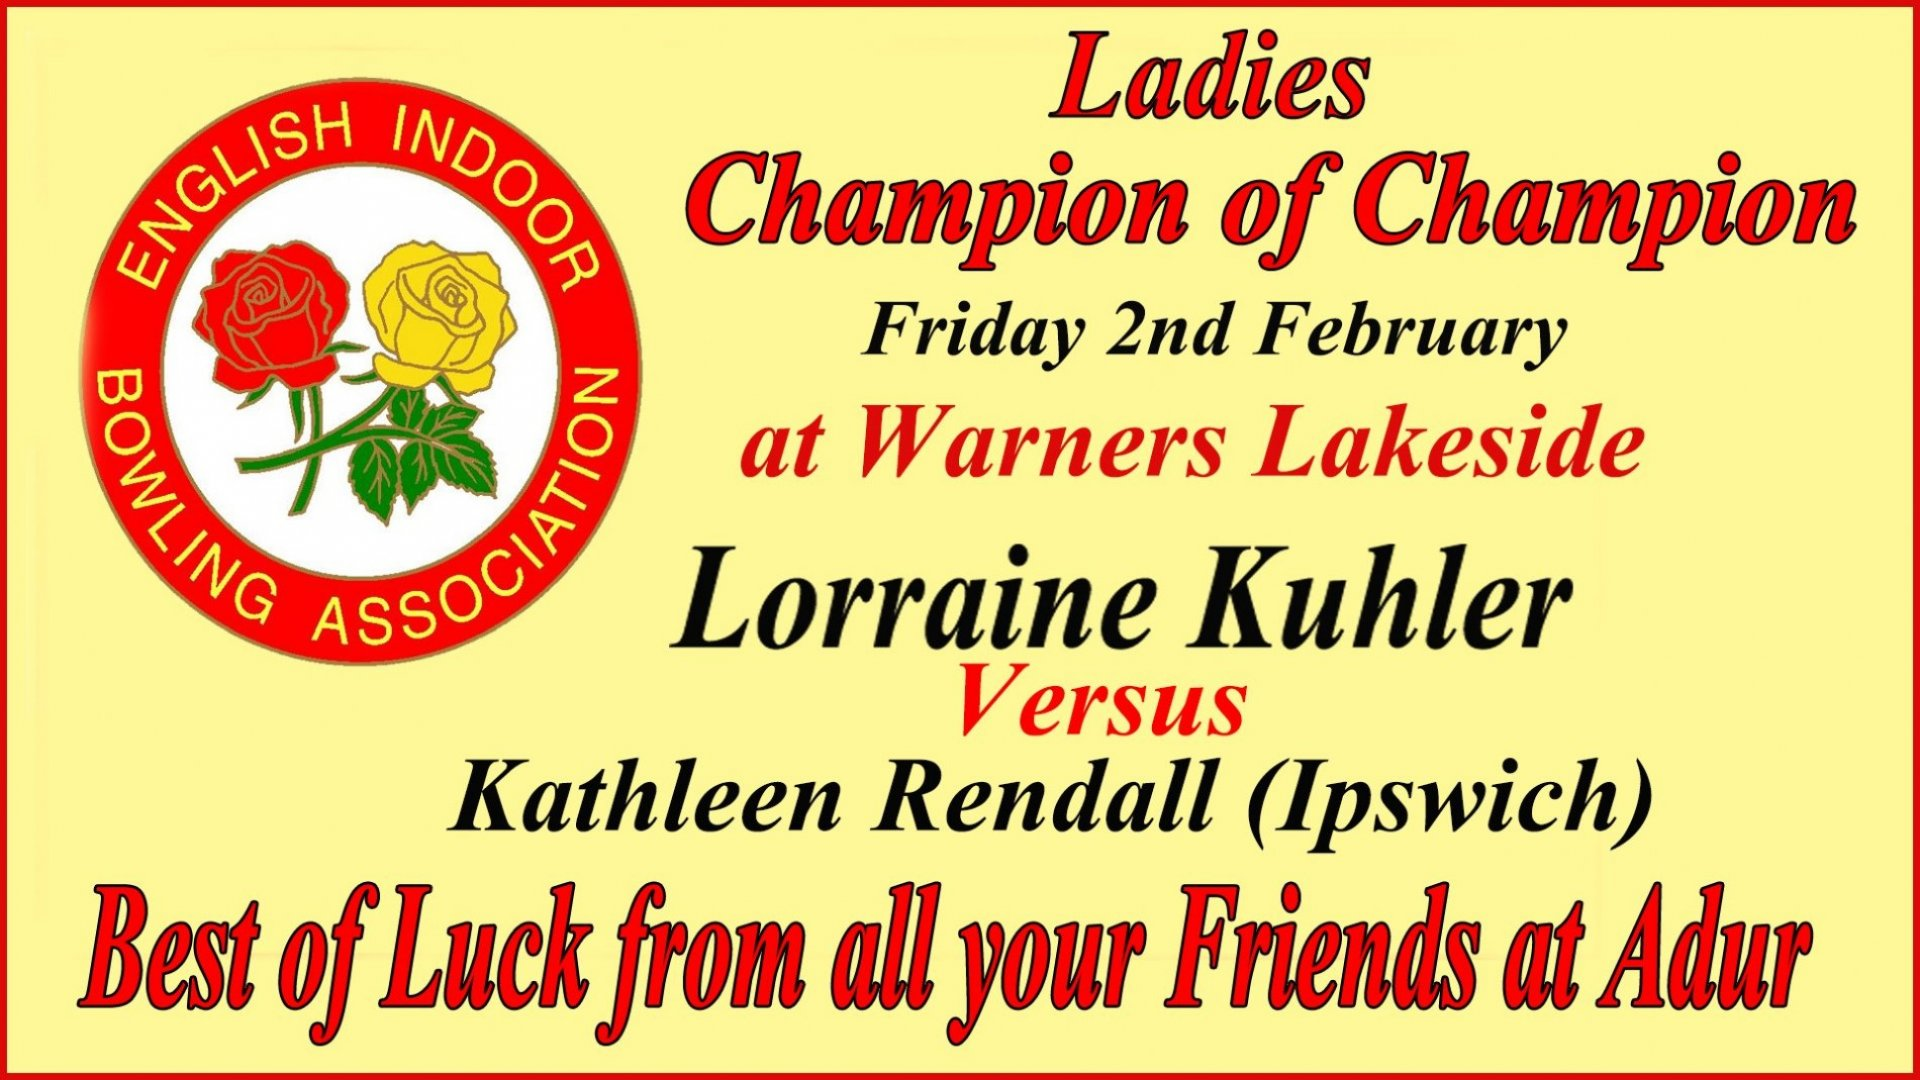 Ladies Champion of Champion Match - 2nd Feb 2018